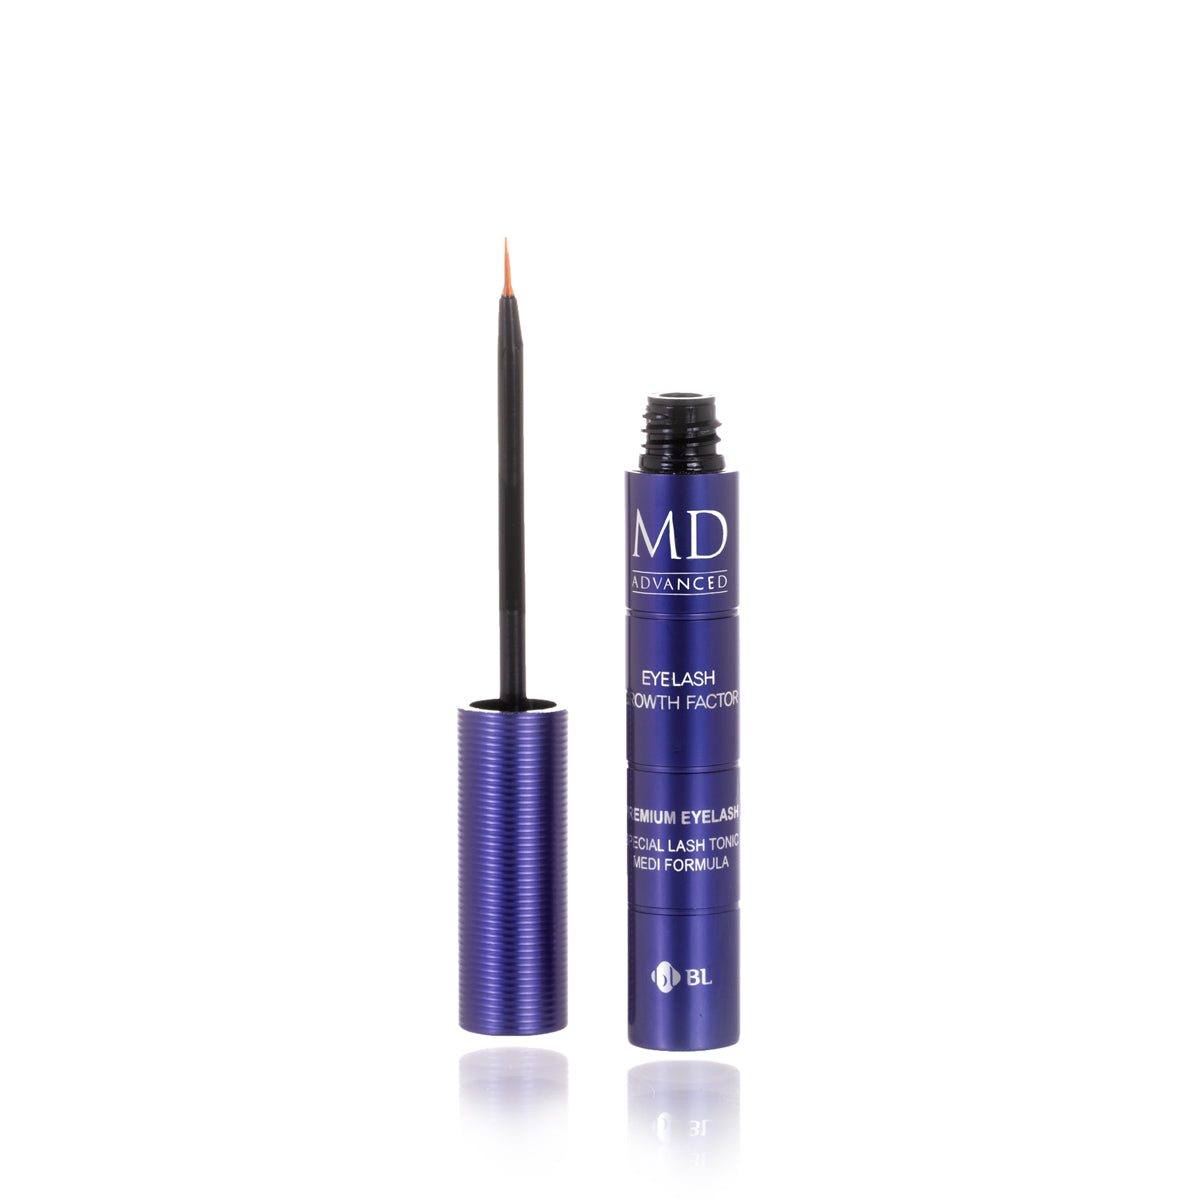 MD Advanced Lash Growth Serum